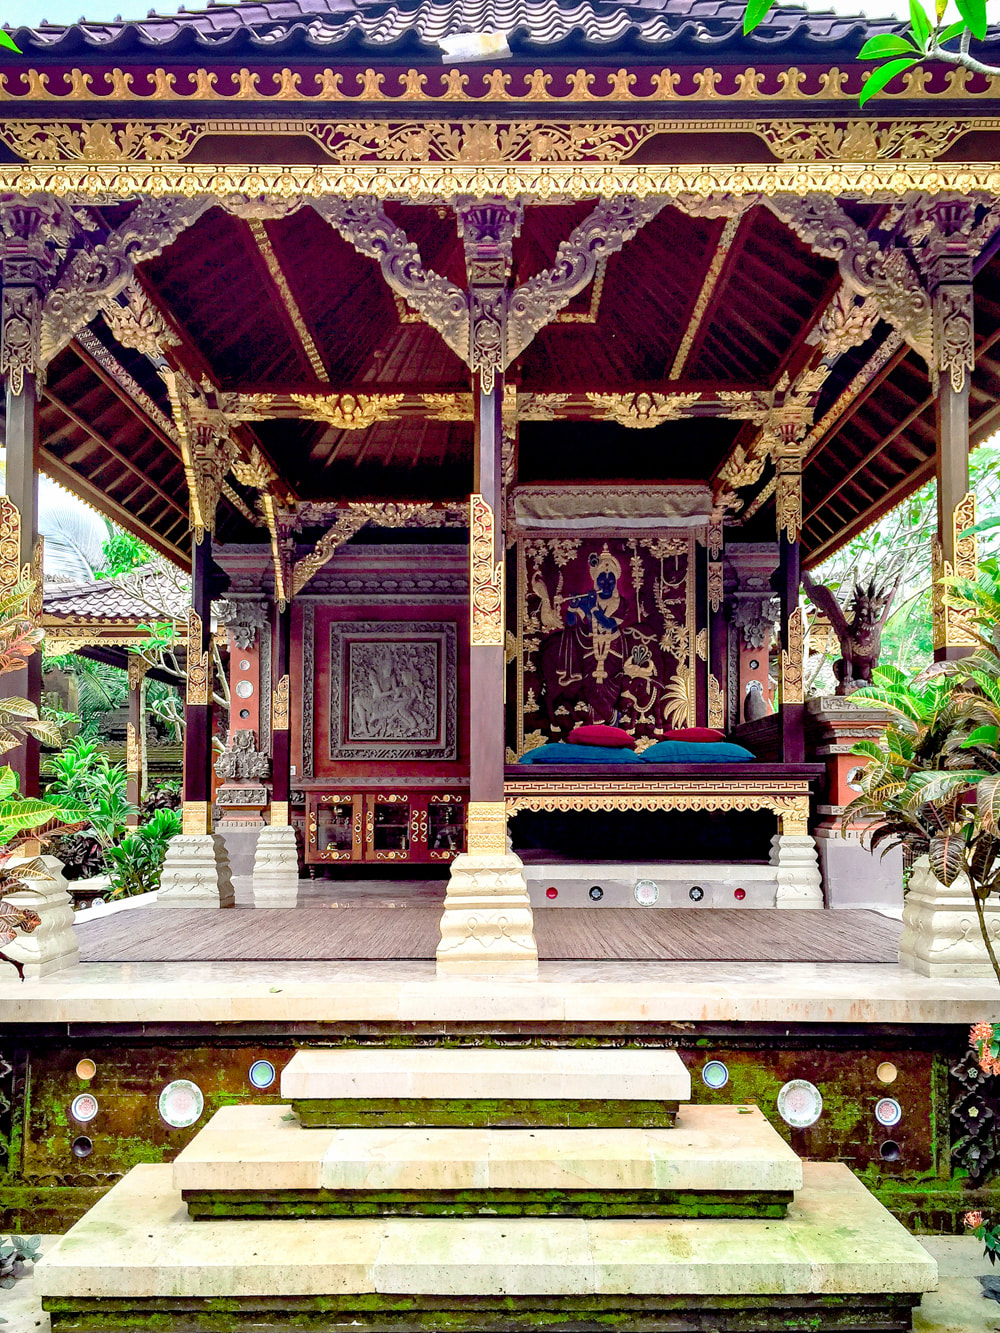 Gilded Bali bale, utilised for weddings and celebrations. Dwaraka, the Royal Villas, Ubud, Bali, Indonesia.